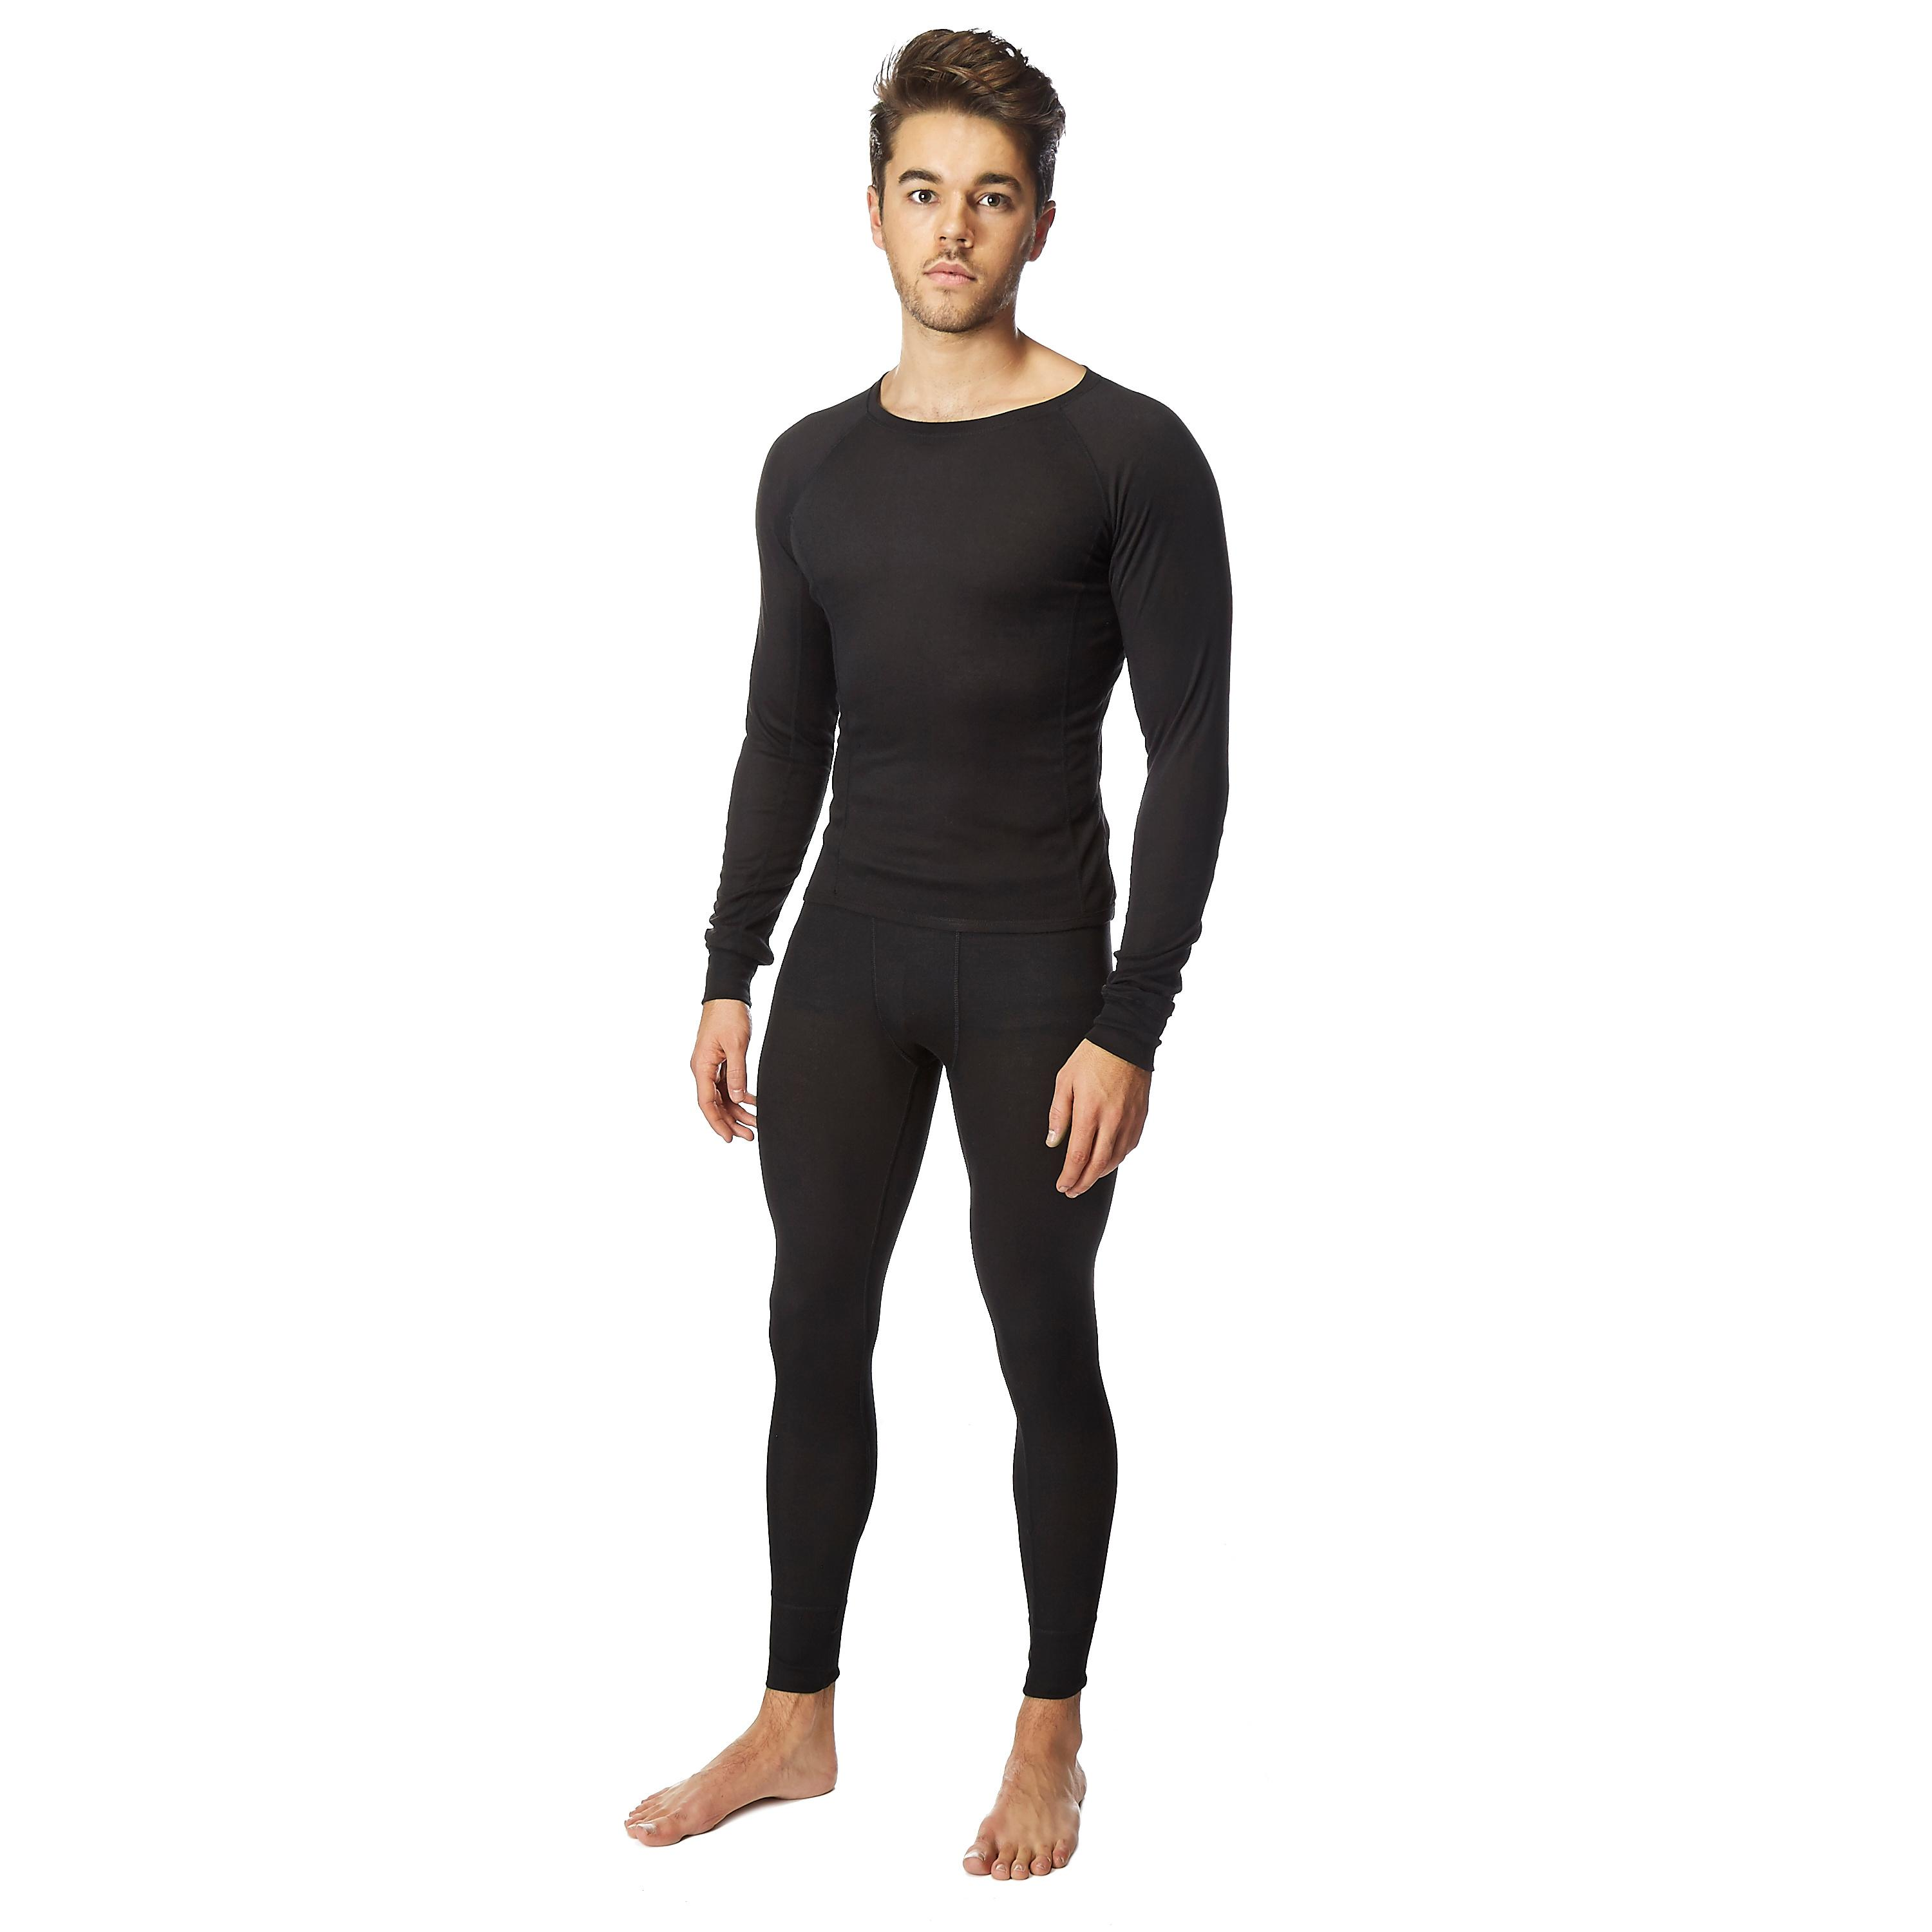 Underwear Thermal Clothing 5OoCUXqy